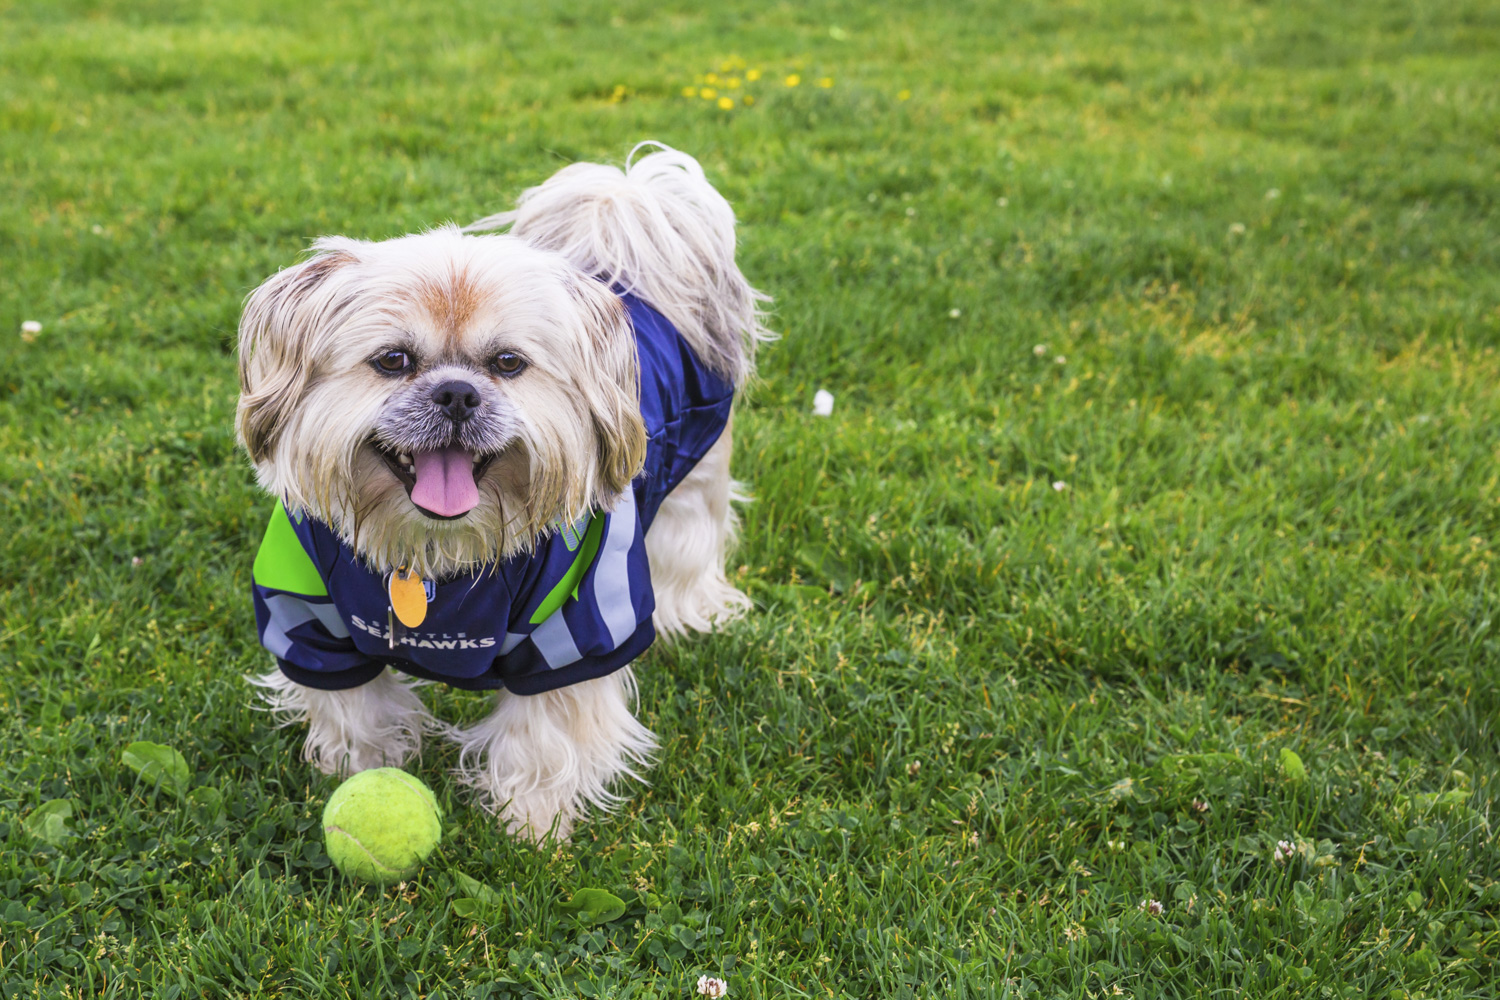 Meet, Elvis! Elvis is a 5-year-old Shih Tzu who is living the dream here in Seattle. He loves people, especially kids and doesn't like crow or squirrels.{ }The Seattle RUFFined Spotlight is a weekly profile of local pets living and loving life in the PNW. If you or someone you know has a pet you'd like featured, email us at hello@seattlerefined.com or tag #SeattleRUFFined and your furbaby could be the next spotlighted! (Image: Sunita Martini / Seattle Refined).